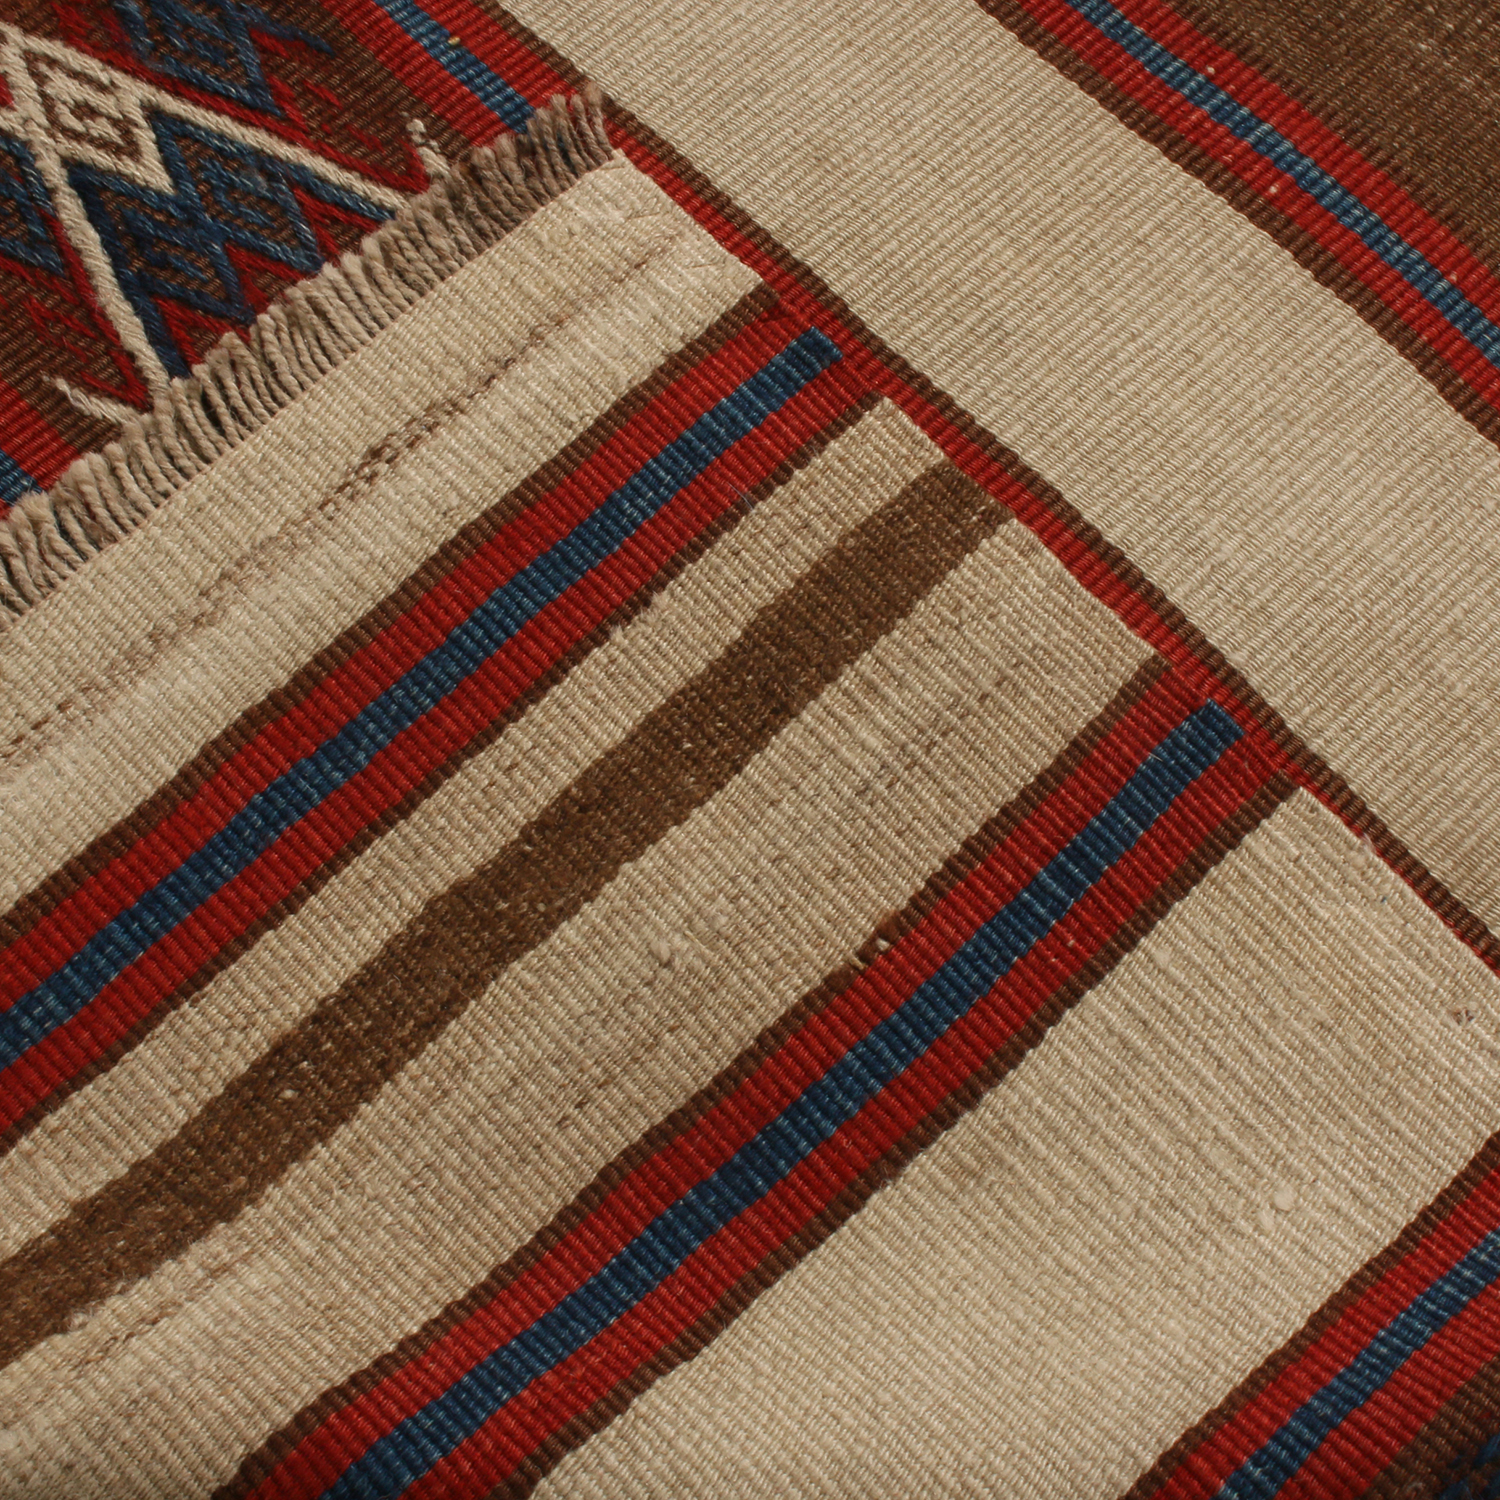 Vintage Mid Century Fatiye Beige Brown Wool Kilim Rug Crimson Red Navy Blue Accents 2 4 X 6 8 19730 Rug Kilim